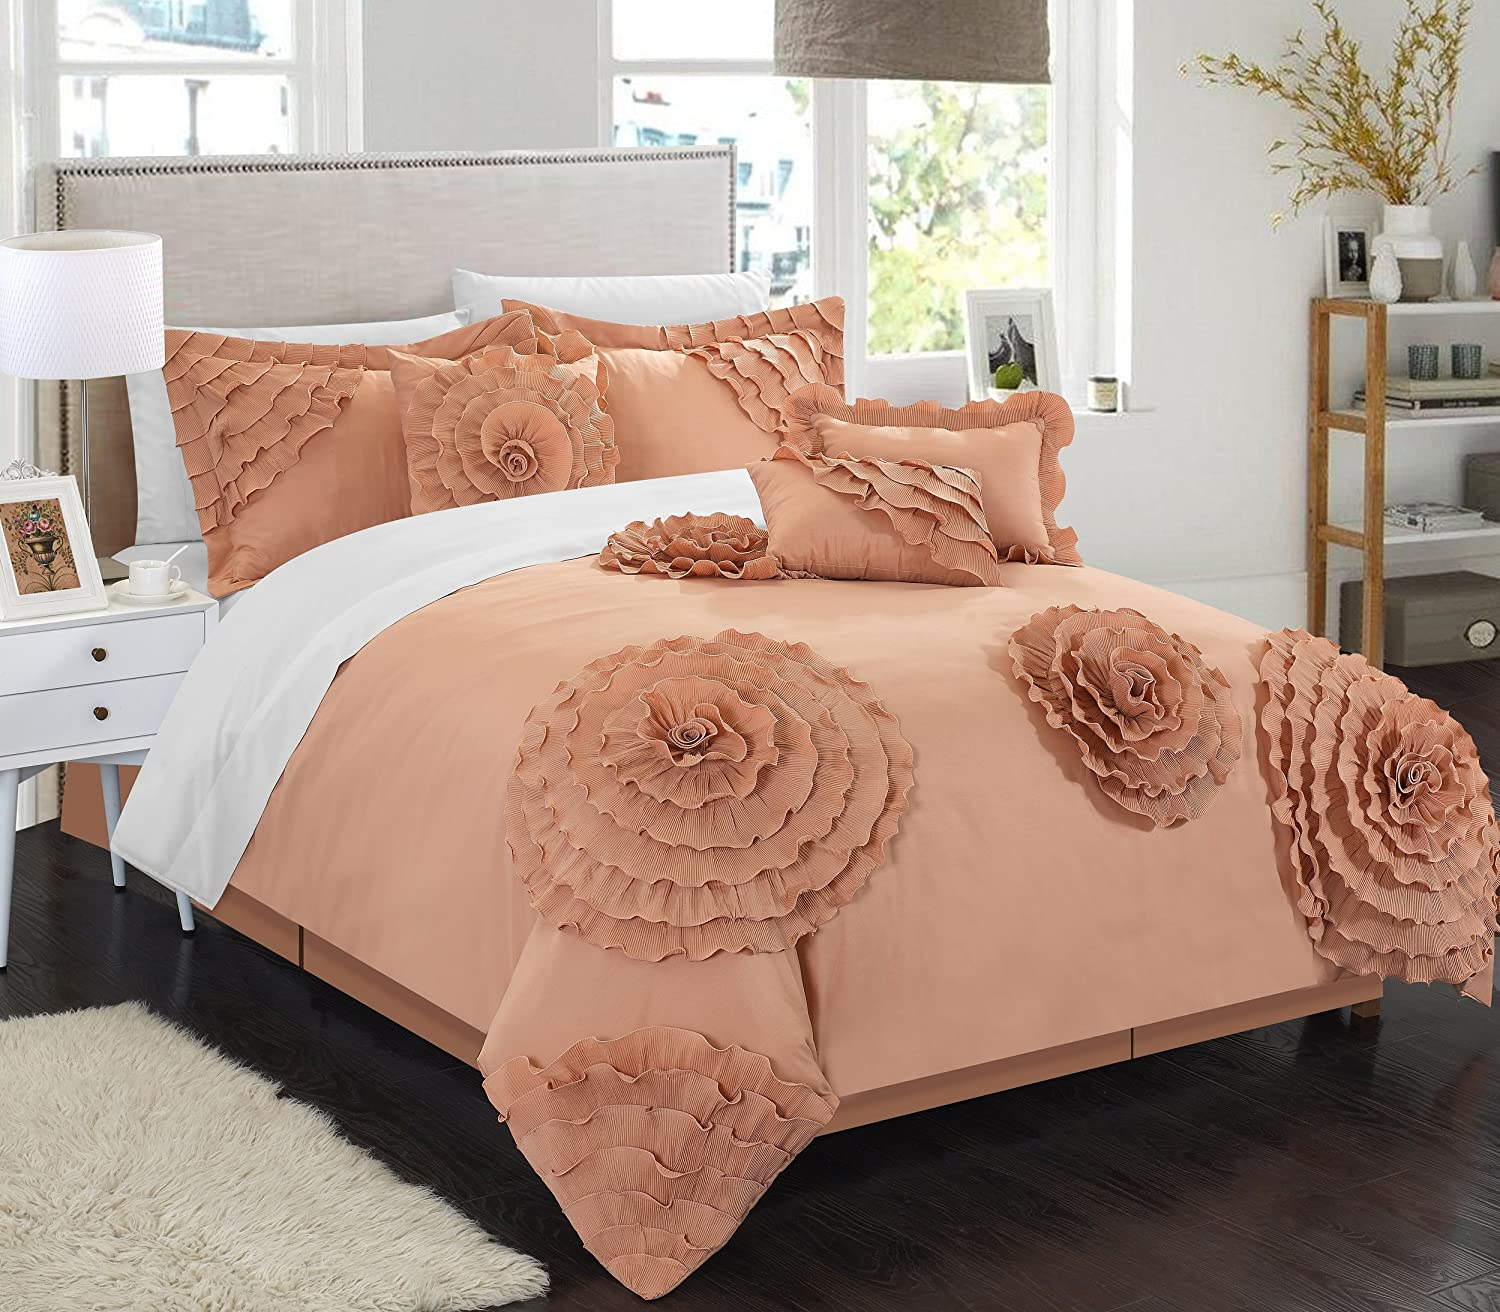 Chic Home 7 Piece Belinda Oversize Filled Floral and Rose Pleated Etched Applique Comforter Set, King, Peach